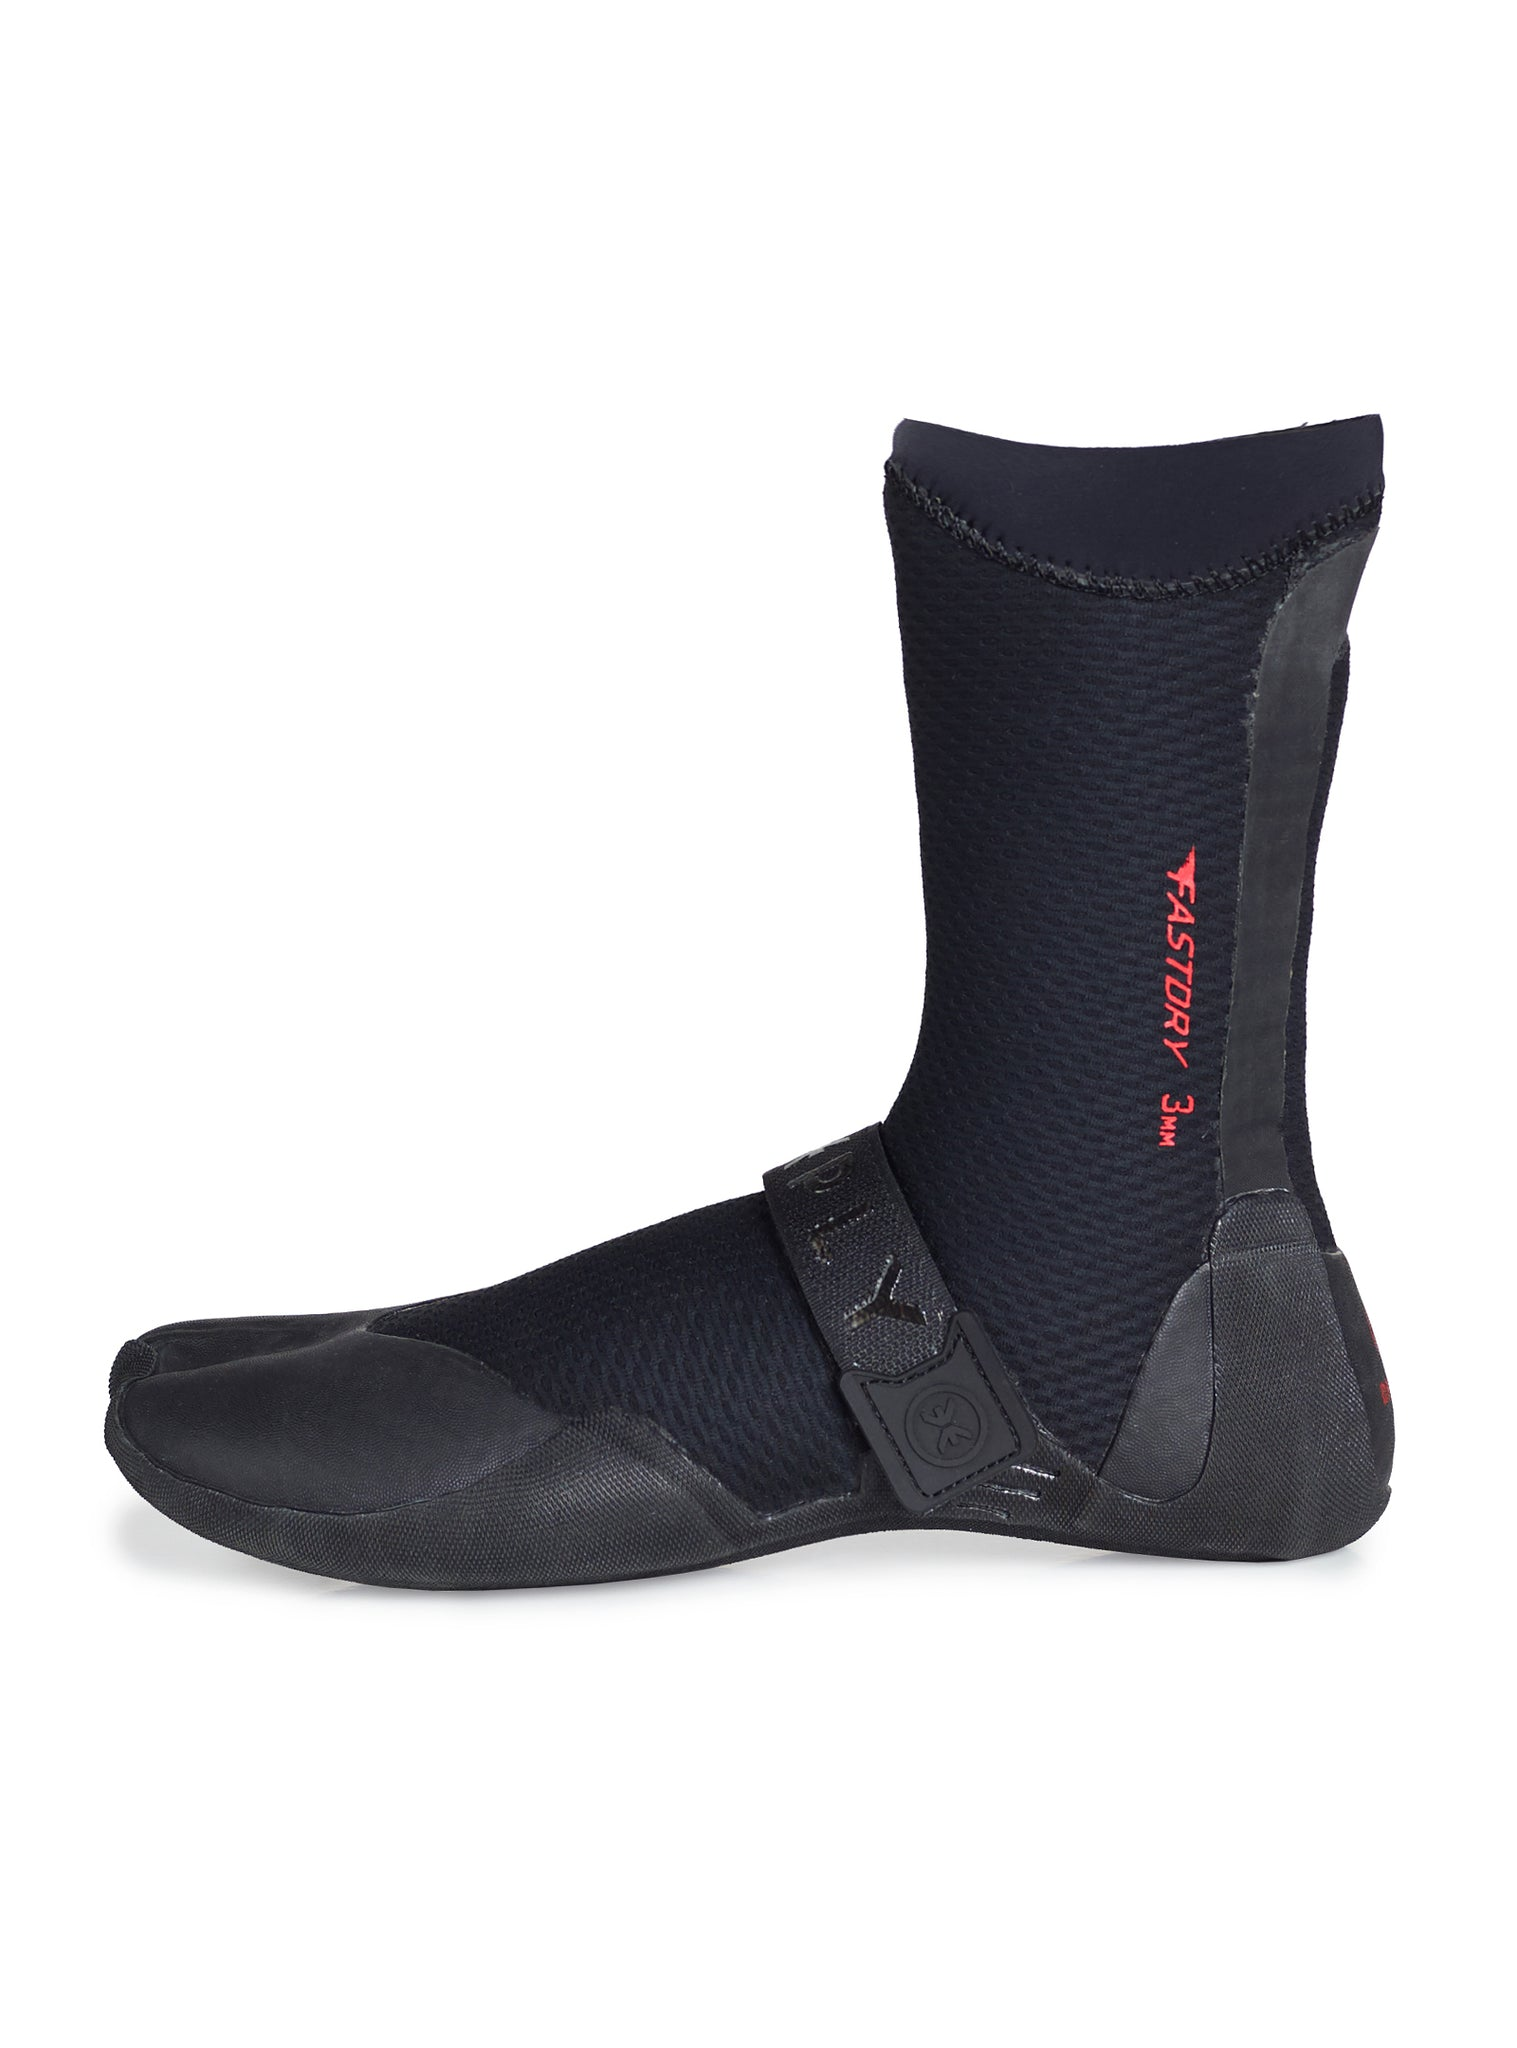 3mm Fastdry Surf Boots Black